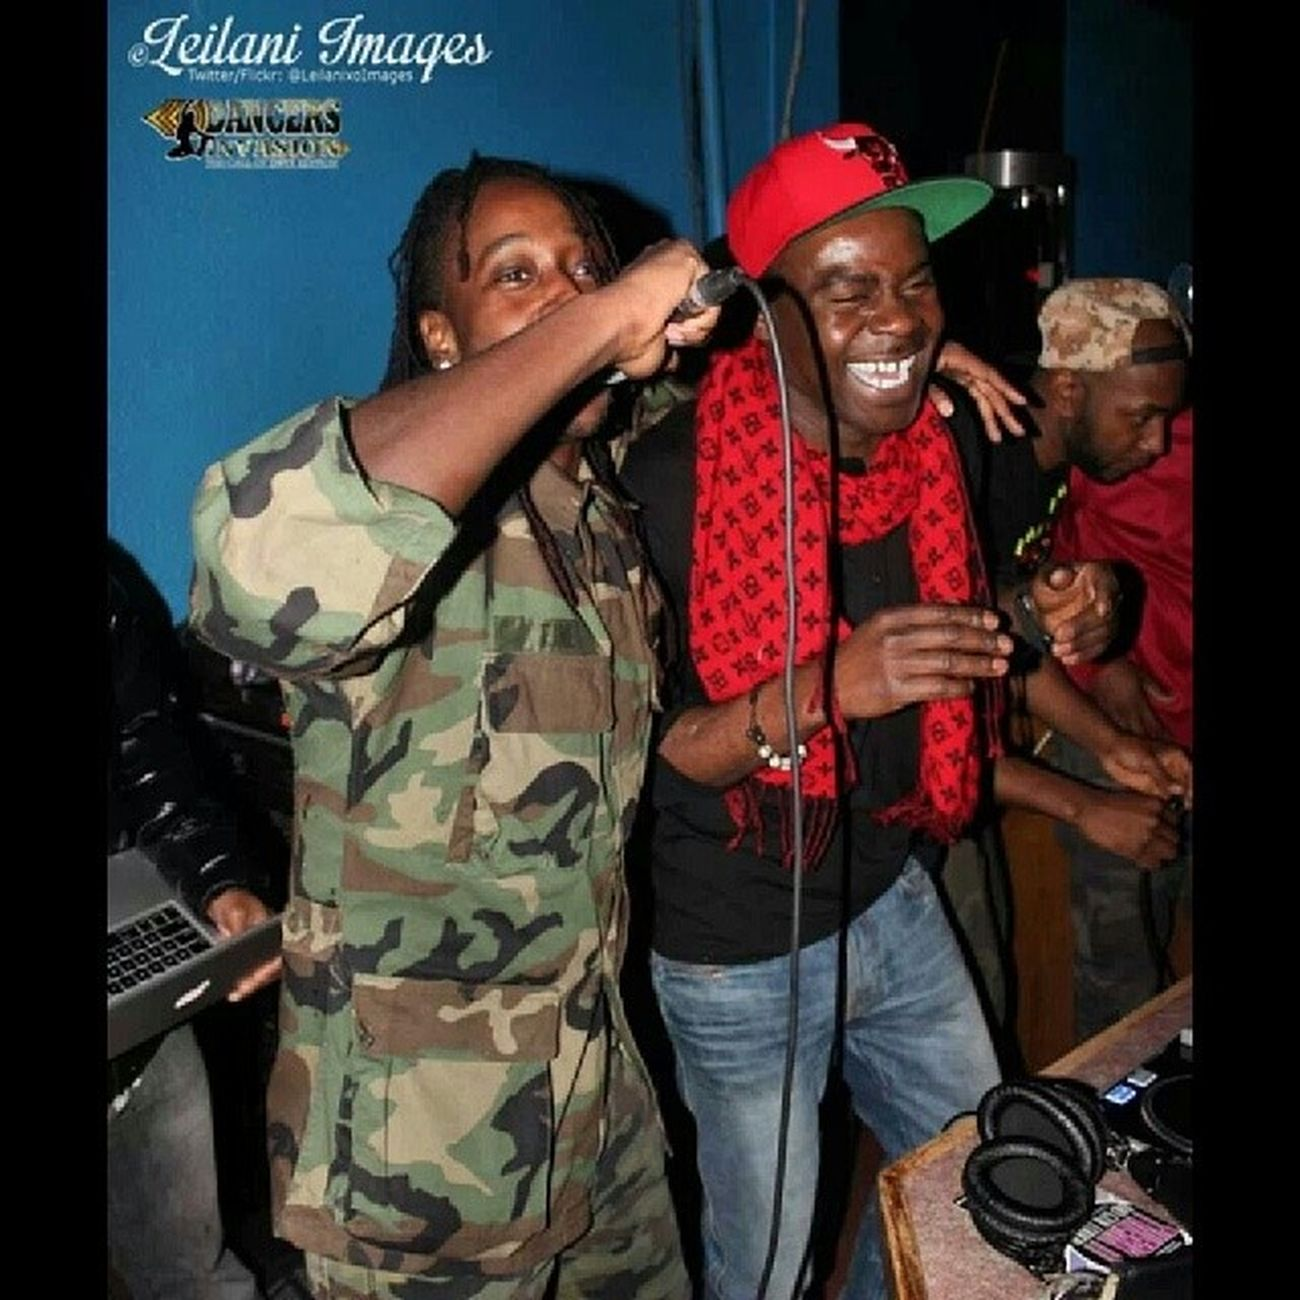 Partymusic Dancehall Music Dancers invation nights life love the vibes normal nofilter